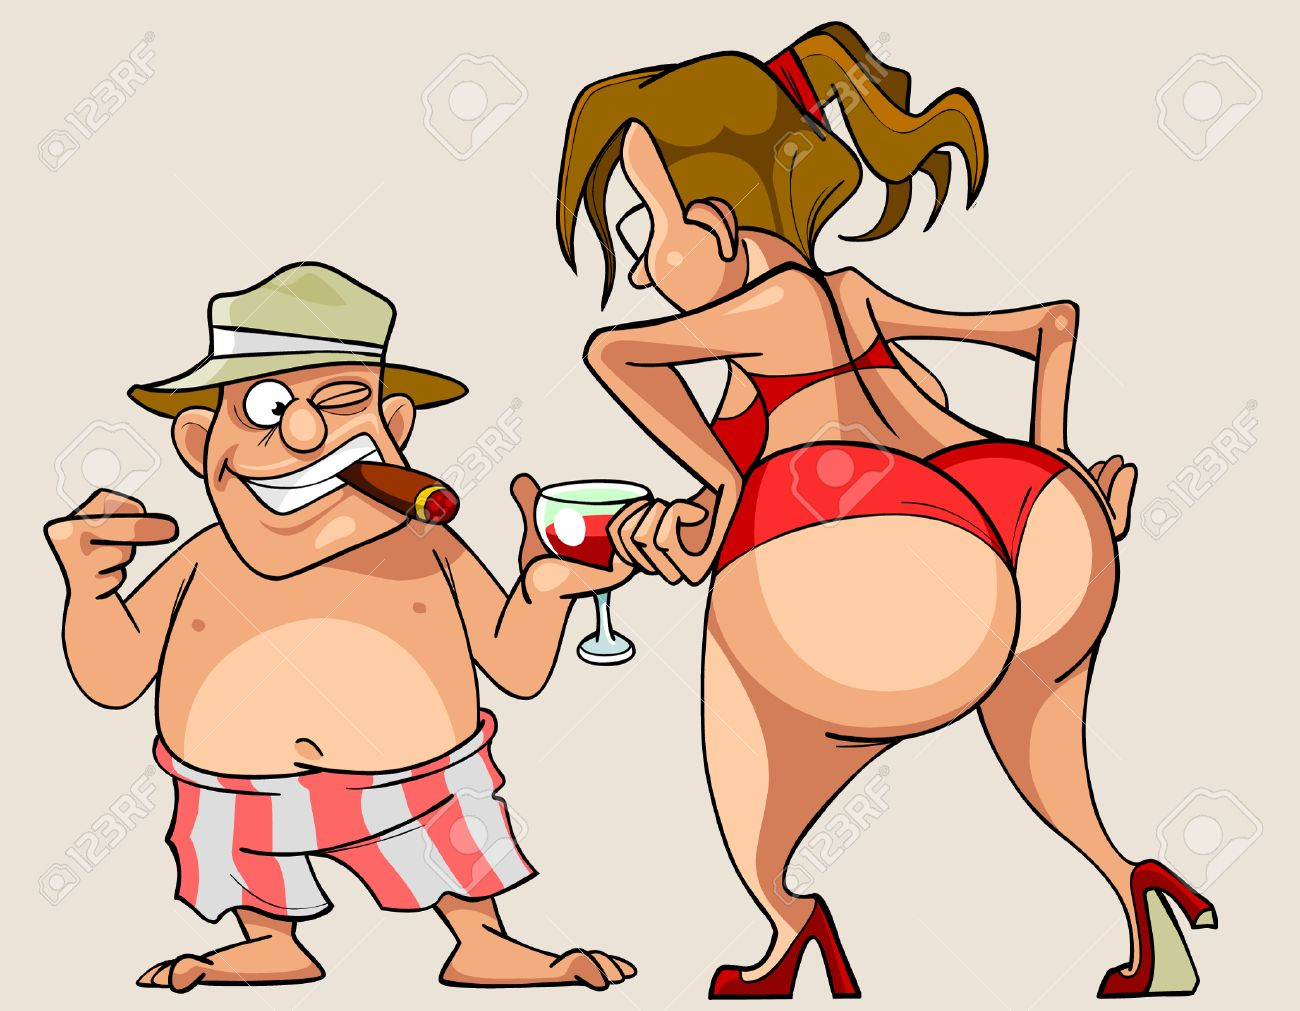 cartoon woman with big ass in a bathing suit and man in shorts